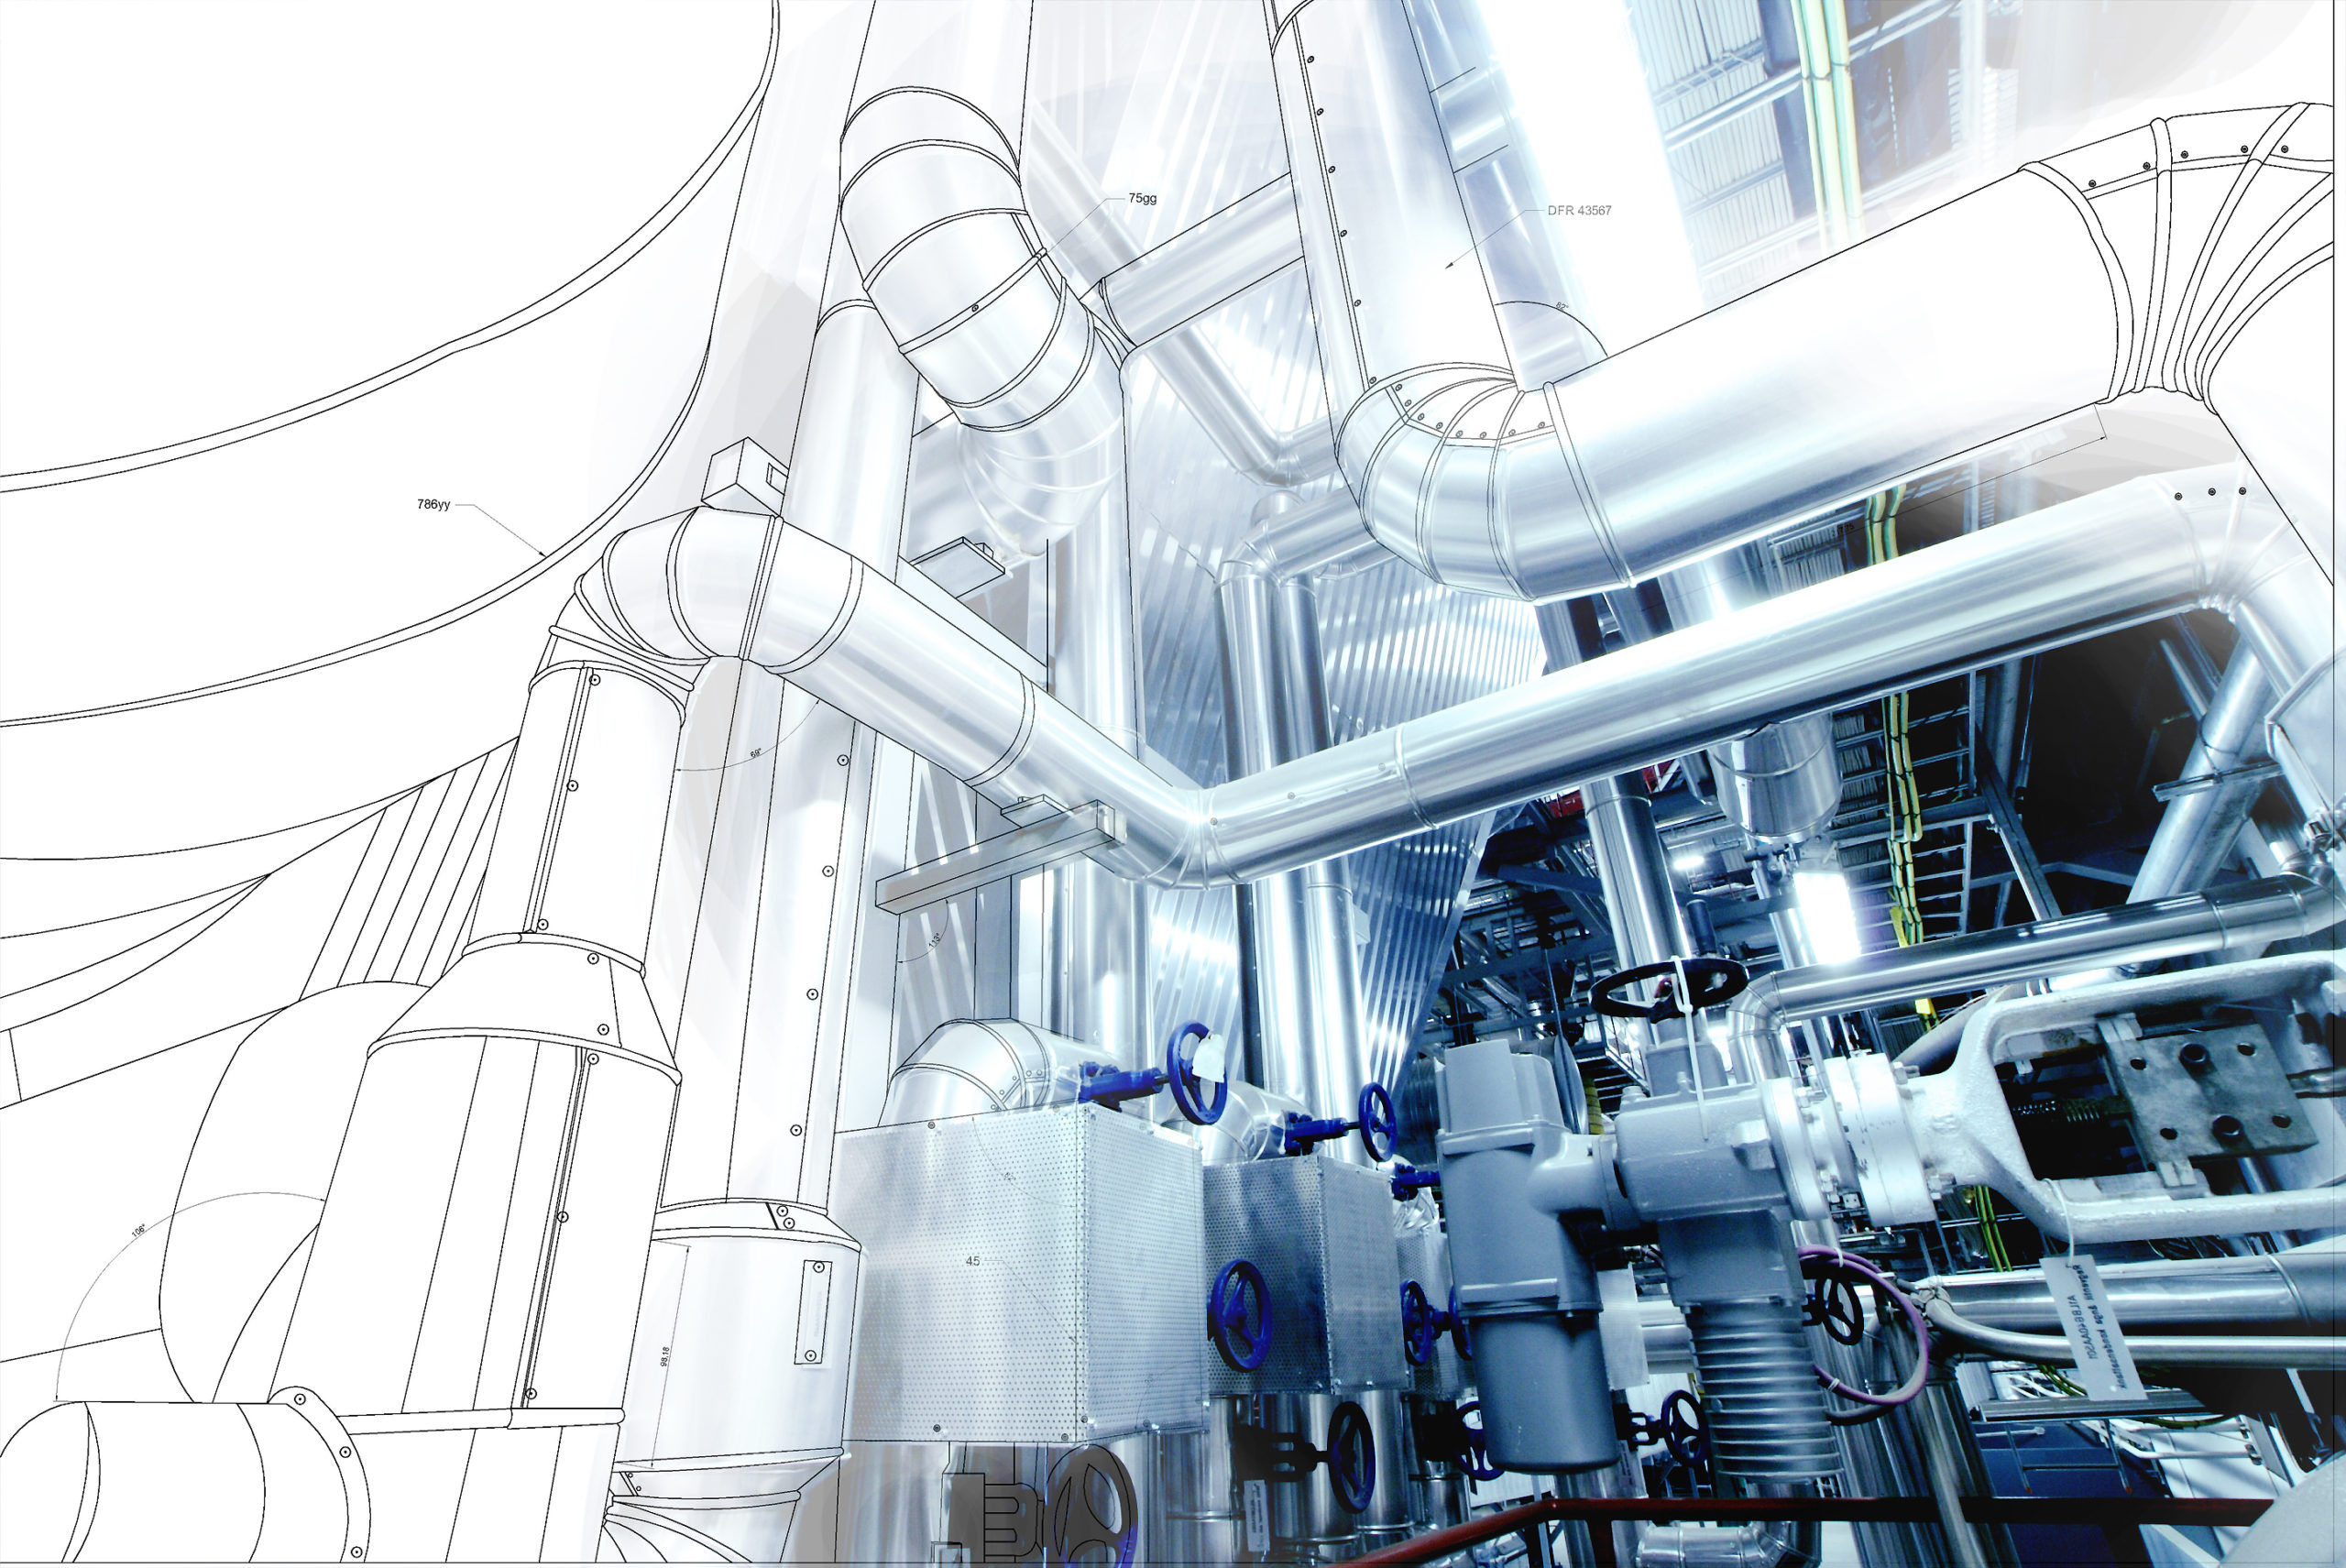 Wireframe,Computer,Cad,Design,Of,Pipelines,For,Modern,Industrial,Power